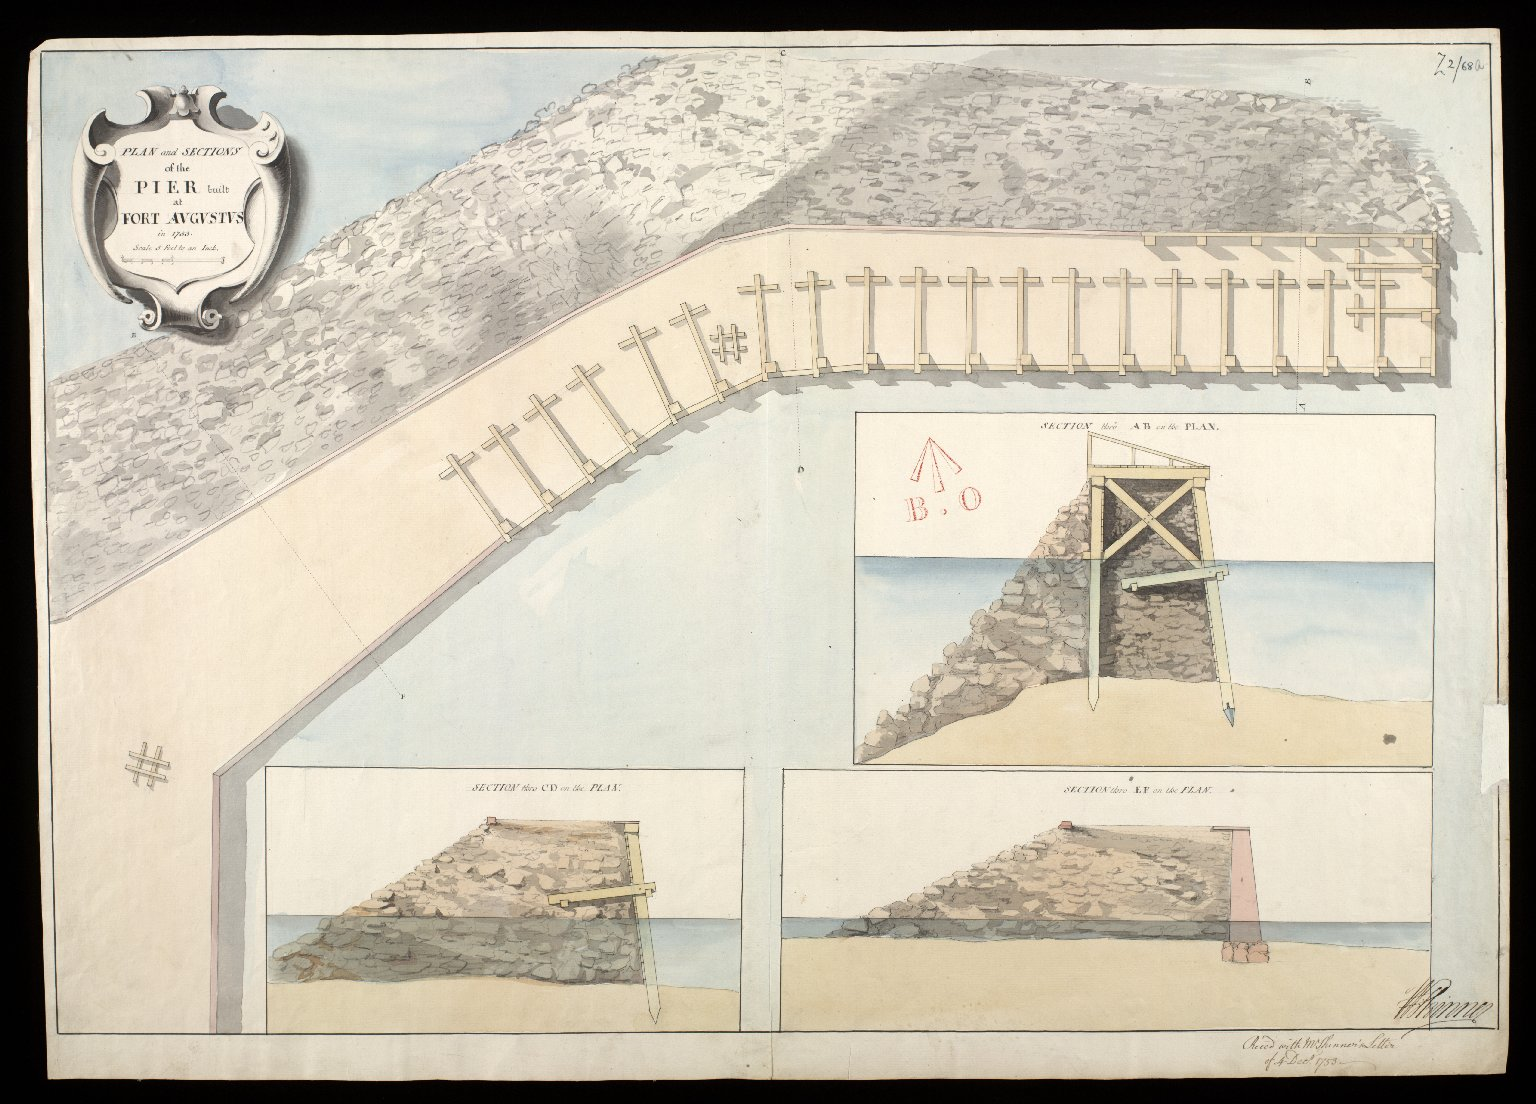 Plan and sections of the pier built at Fort Augustus in 1753 [1 of 1]